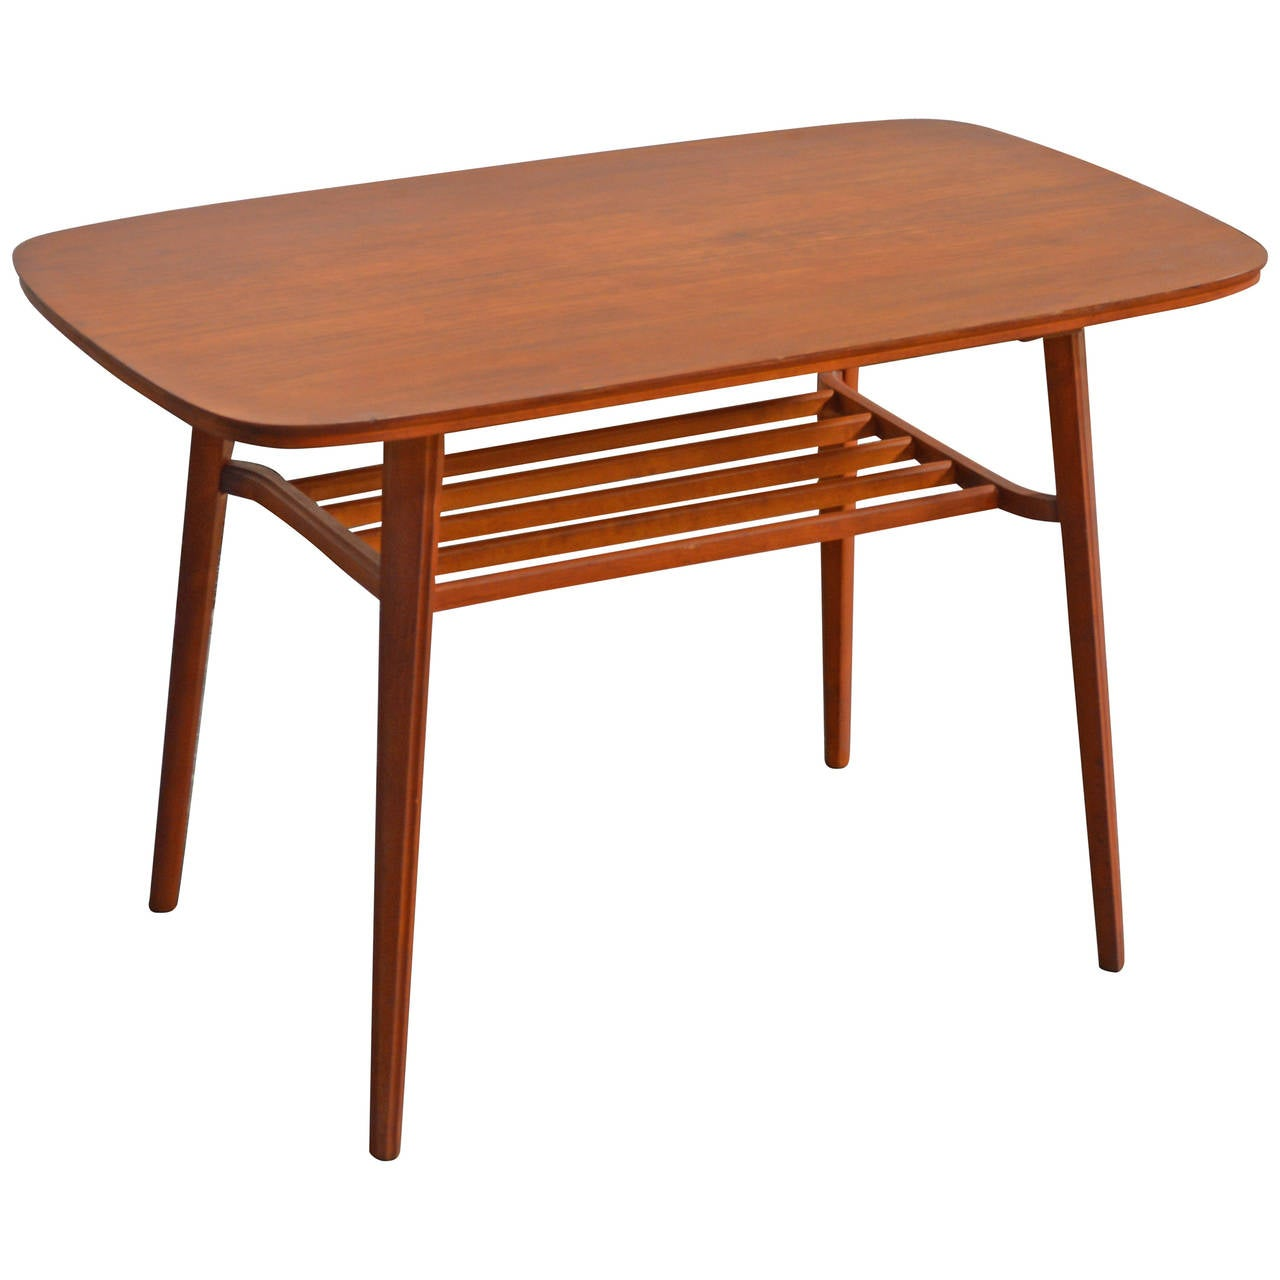 swedish mid century teak coffee table for sale at 1stdibs. Black Bedroom Furniture Sets. Home Design Ideas